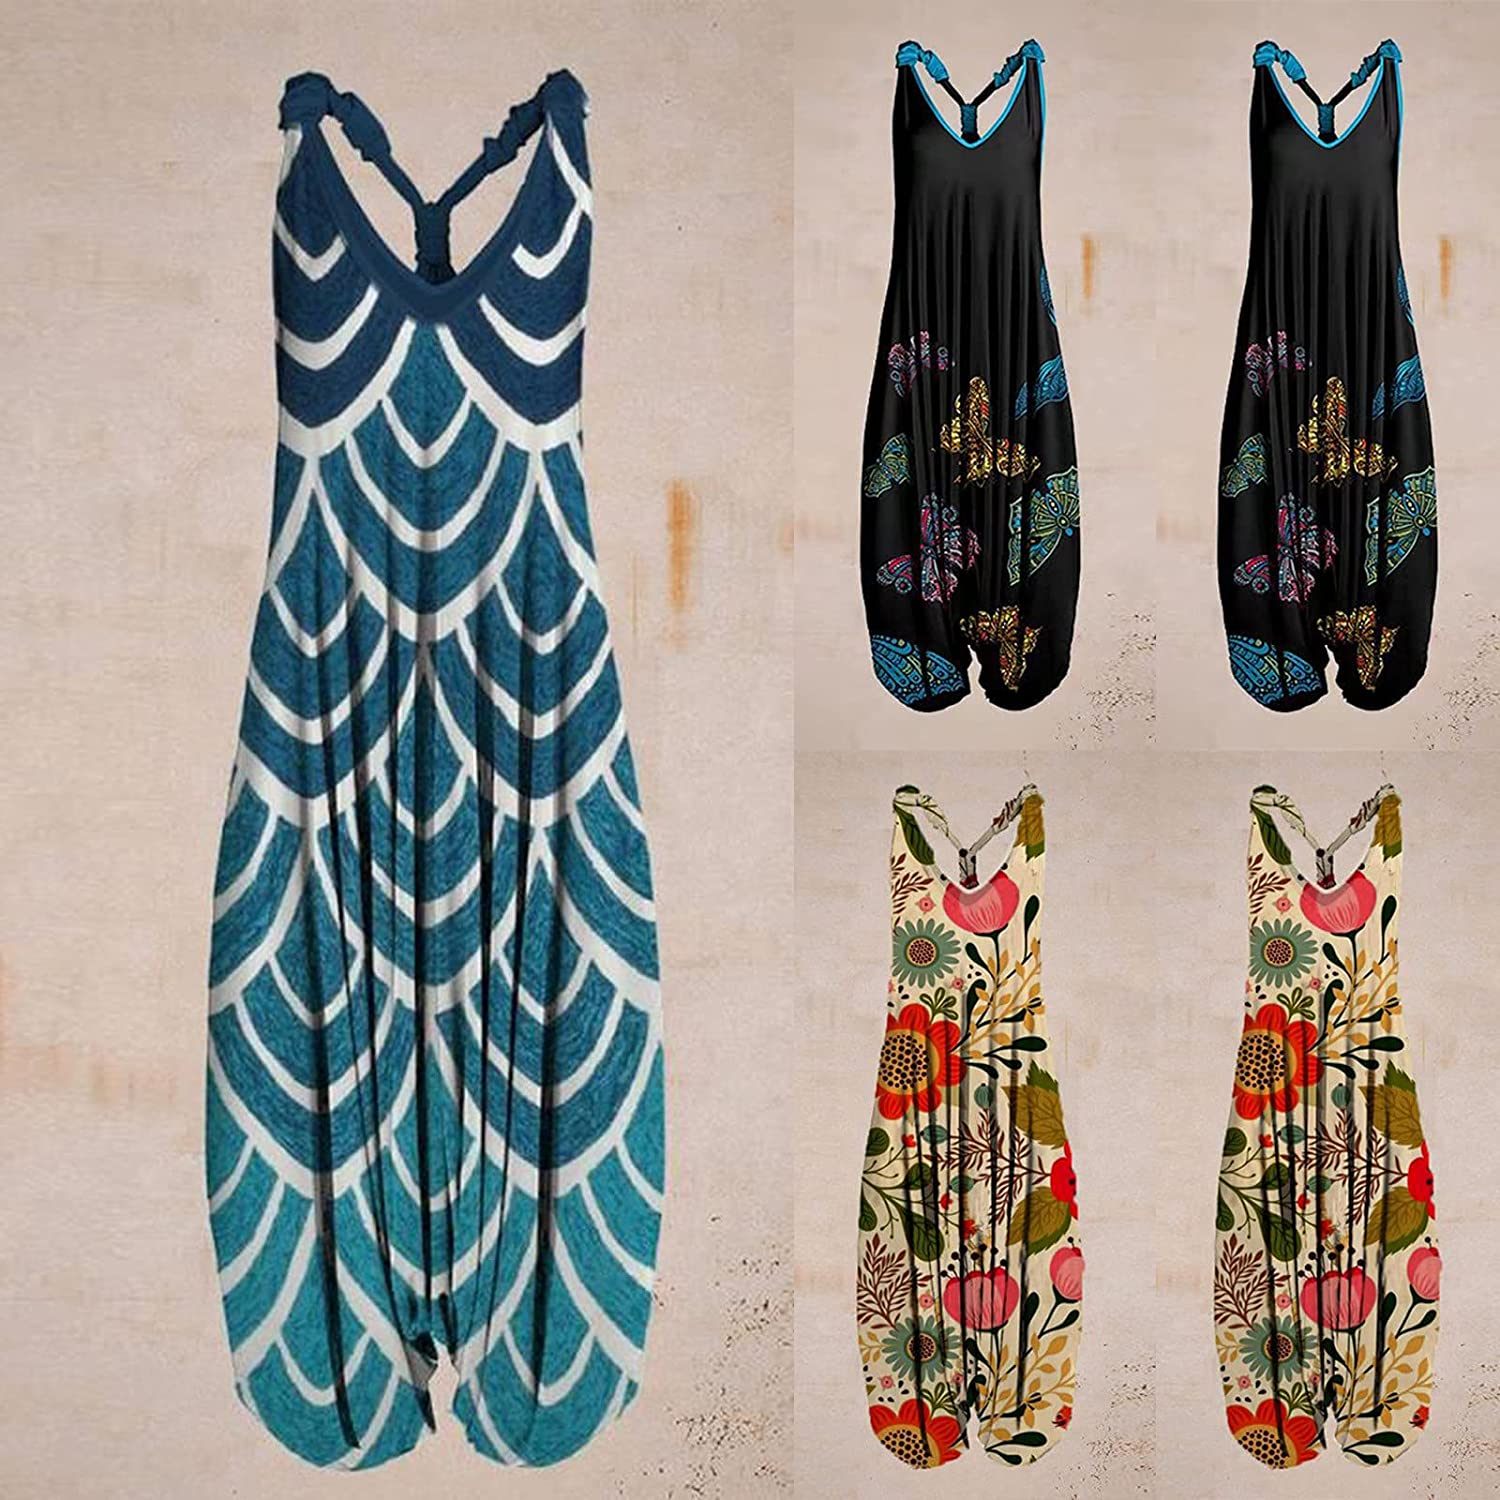 Afelkas Womens Floral Printed Jumpsuits Retro Casual Playsuit Sleeveless Loose Backless Romper One-Piece Harem Pants